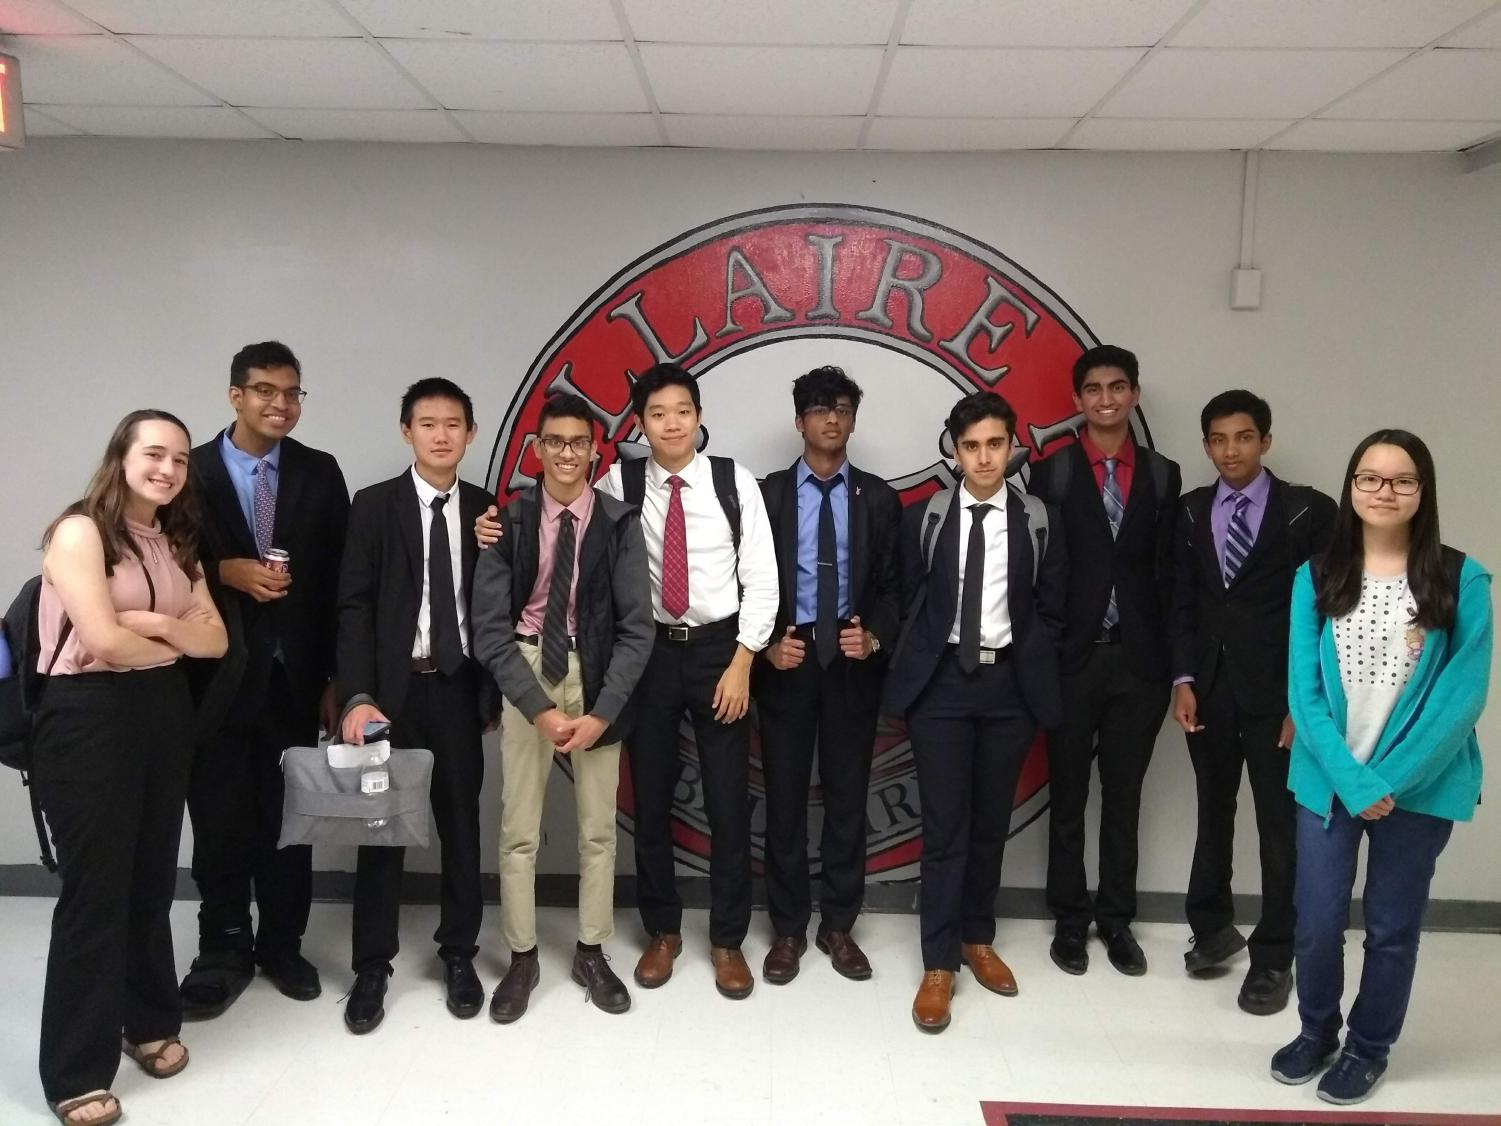 Debaters+Attend+Bellaire%2C+St.+Mark%27s%2C+and+Ronald+Reagan+Tournaments